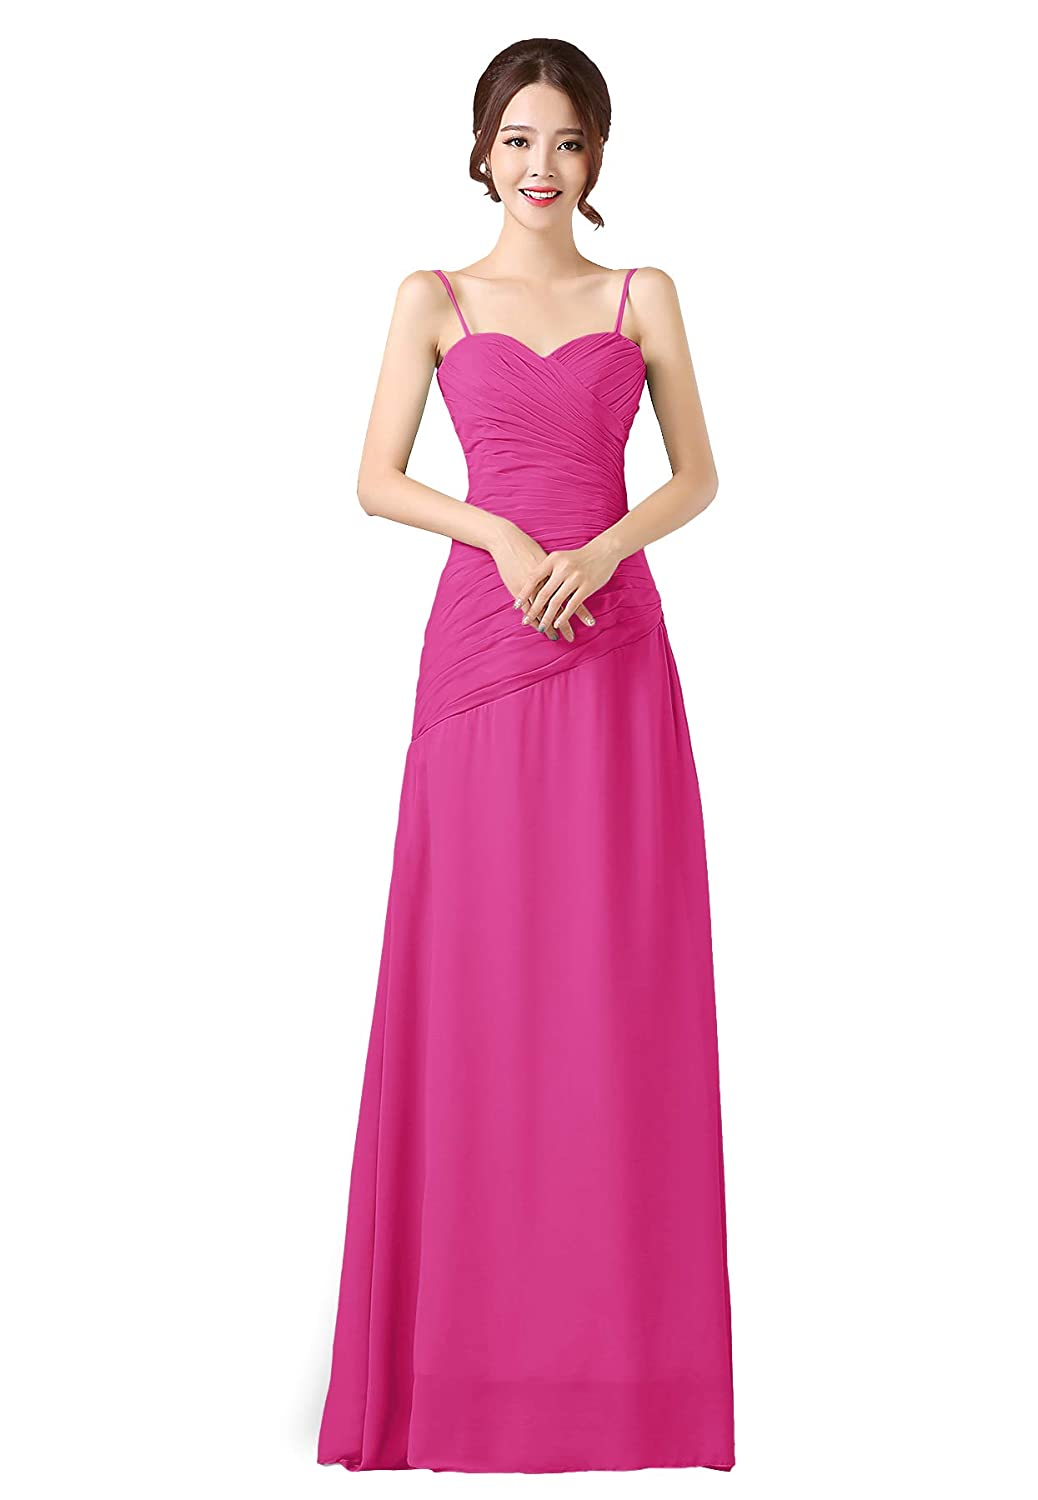 Hot Pink ANGELWARDROBE Spaghetti Straps Bridesmaid Dresses Long Oblique Ruffles Party Prom Gowns